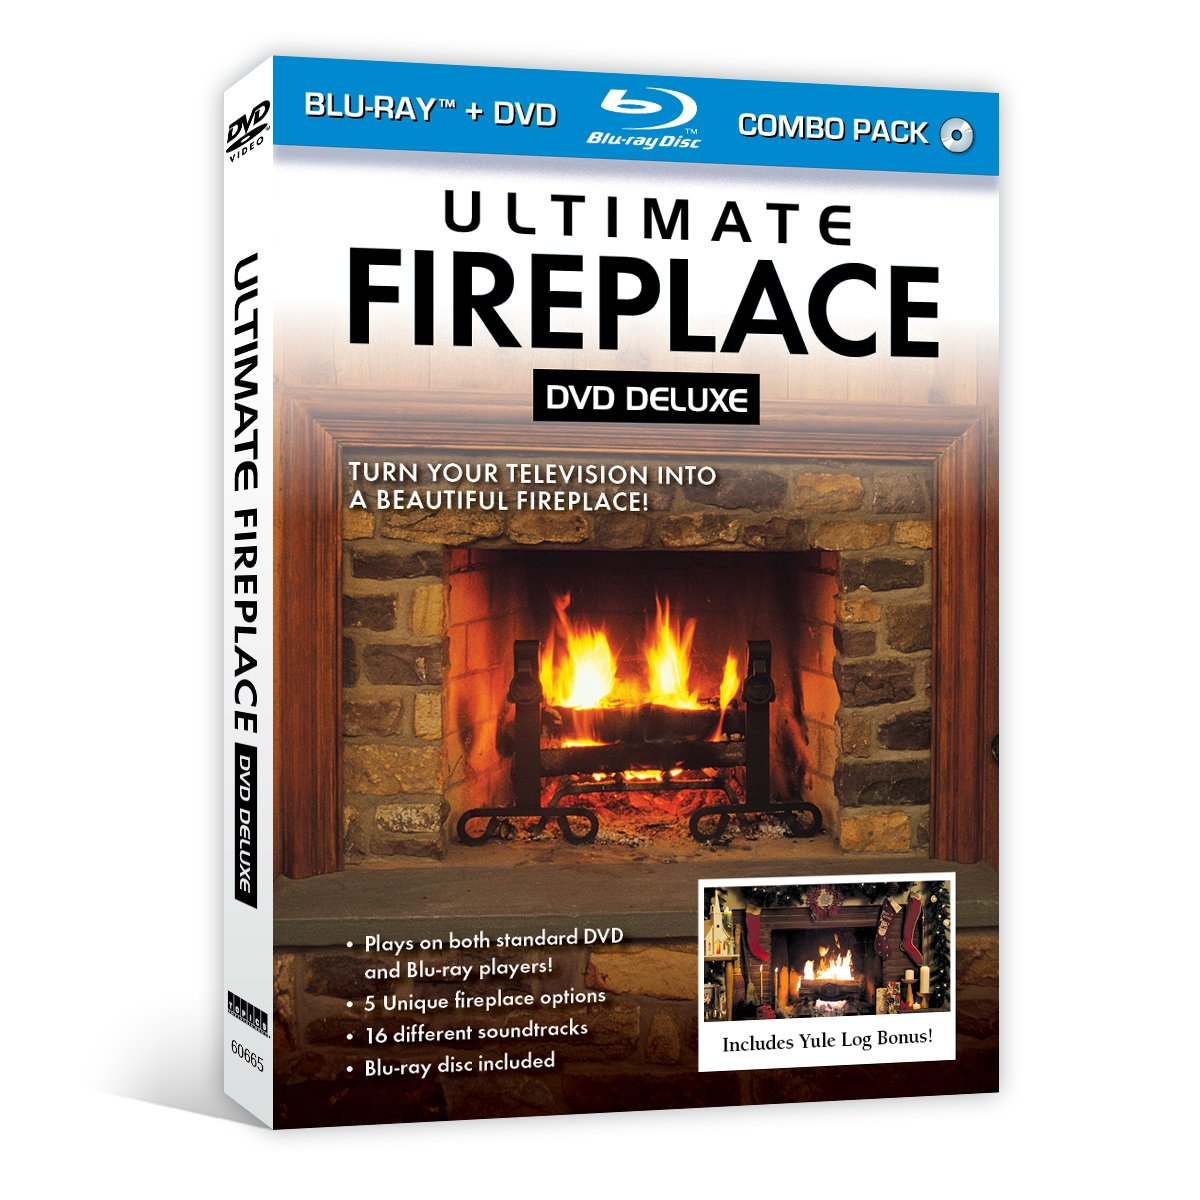 Amazon.com: Ultimate Fireplace DVD Deluxe (+ Bonus Blu-ray disc): -: Movies & TV